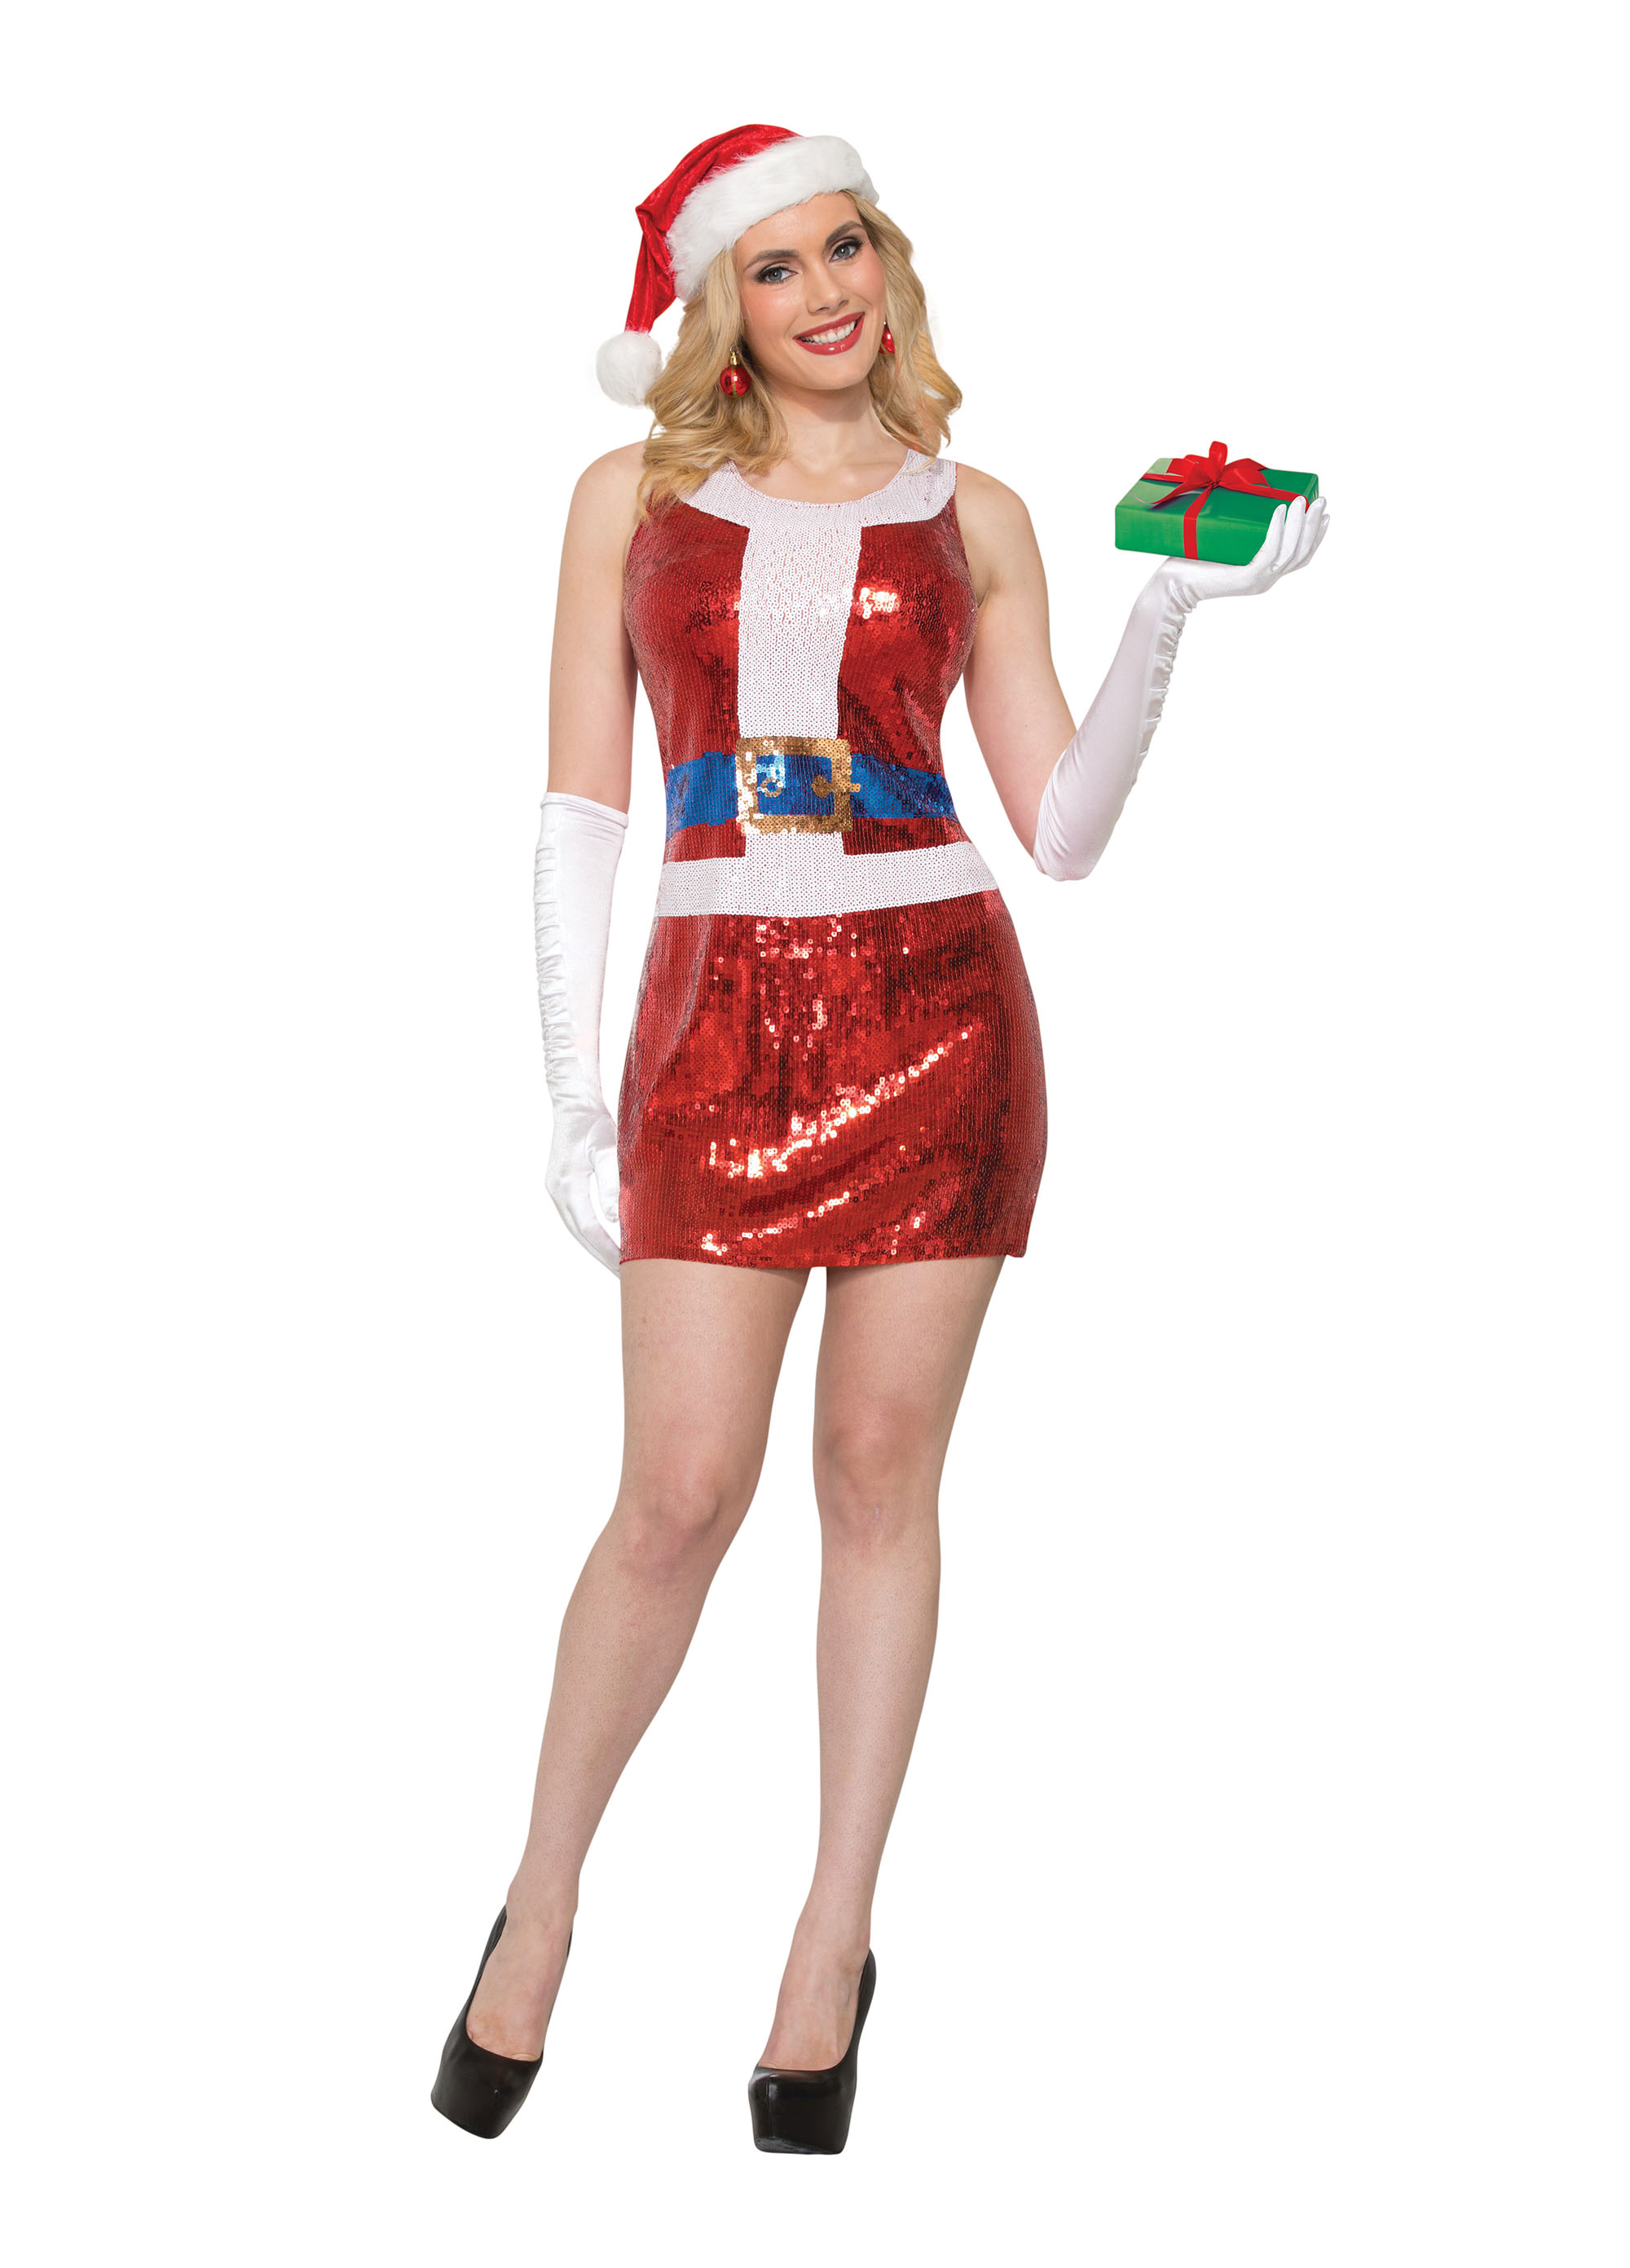 Miss Santa Dress Sequin Christmas Fancy Dress Costume Outfit Womens Adult UK 6-8